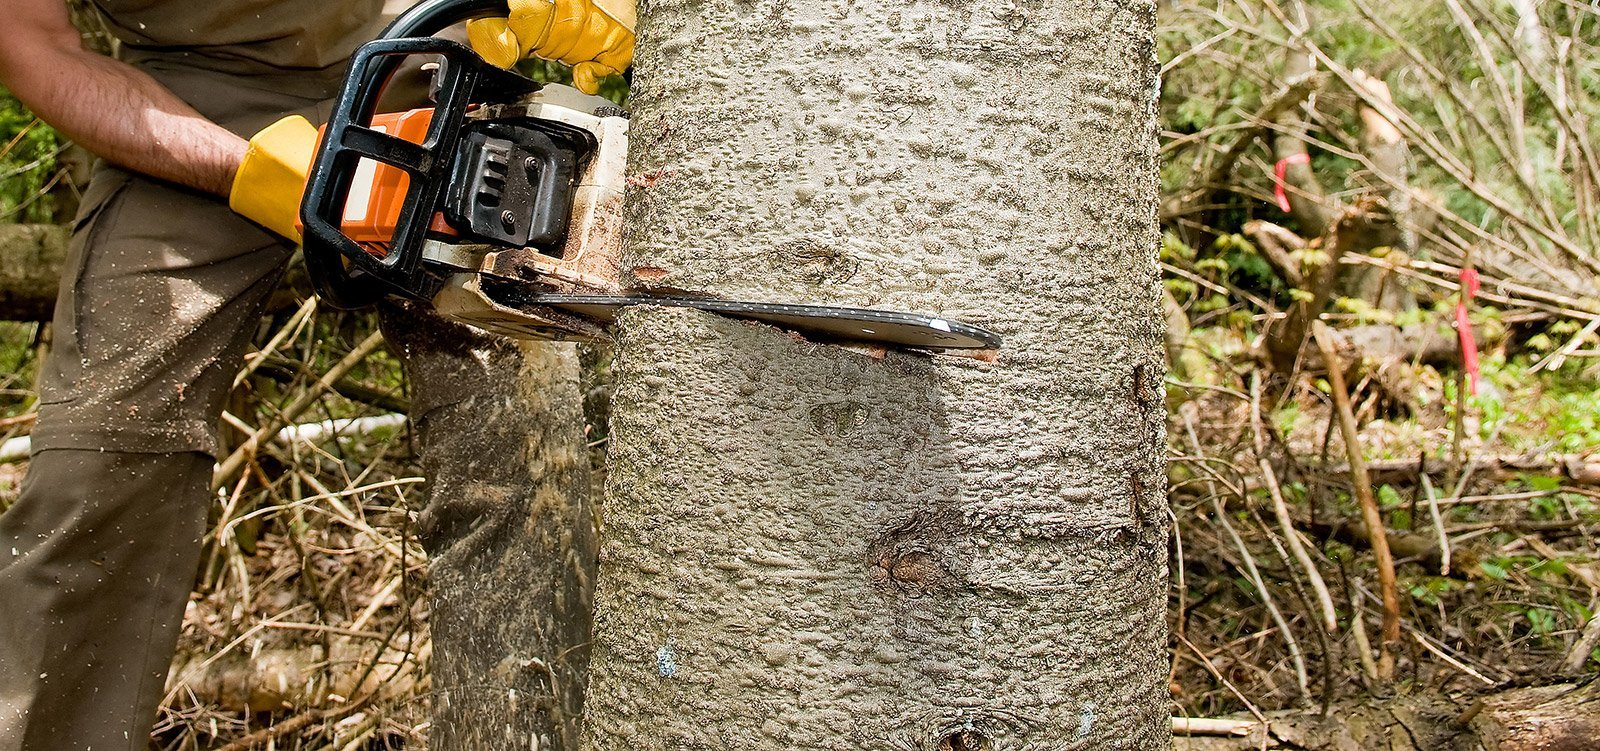 Why should you use the tree stump removal Adelaide service?